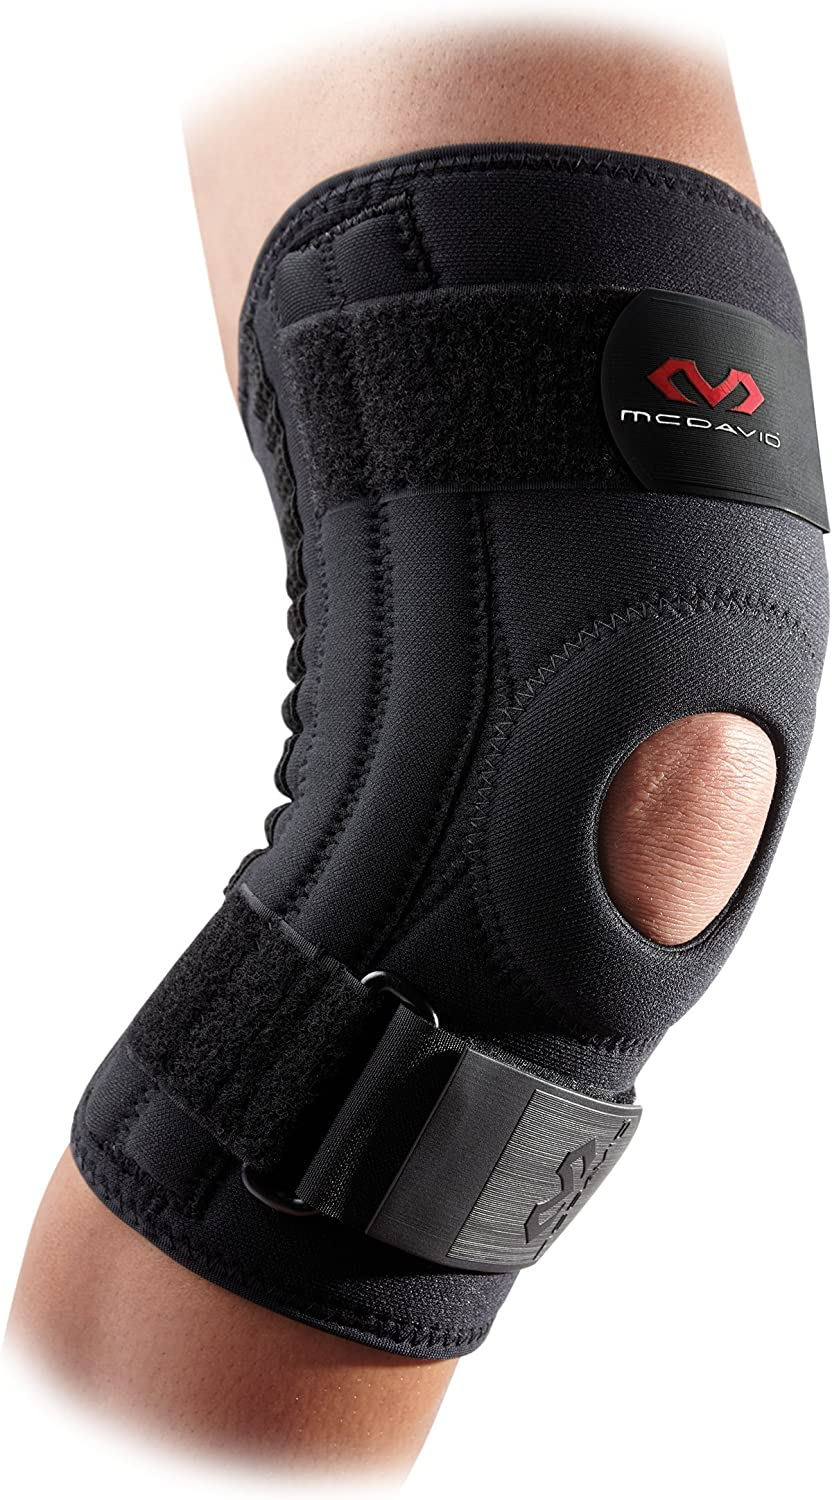 McDavid 421 Level Denver Mall 2 Knee with Black Stays Support Genuine Free Shipping X-Large